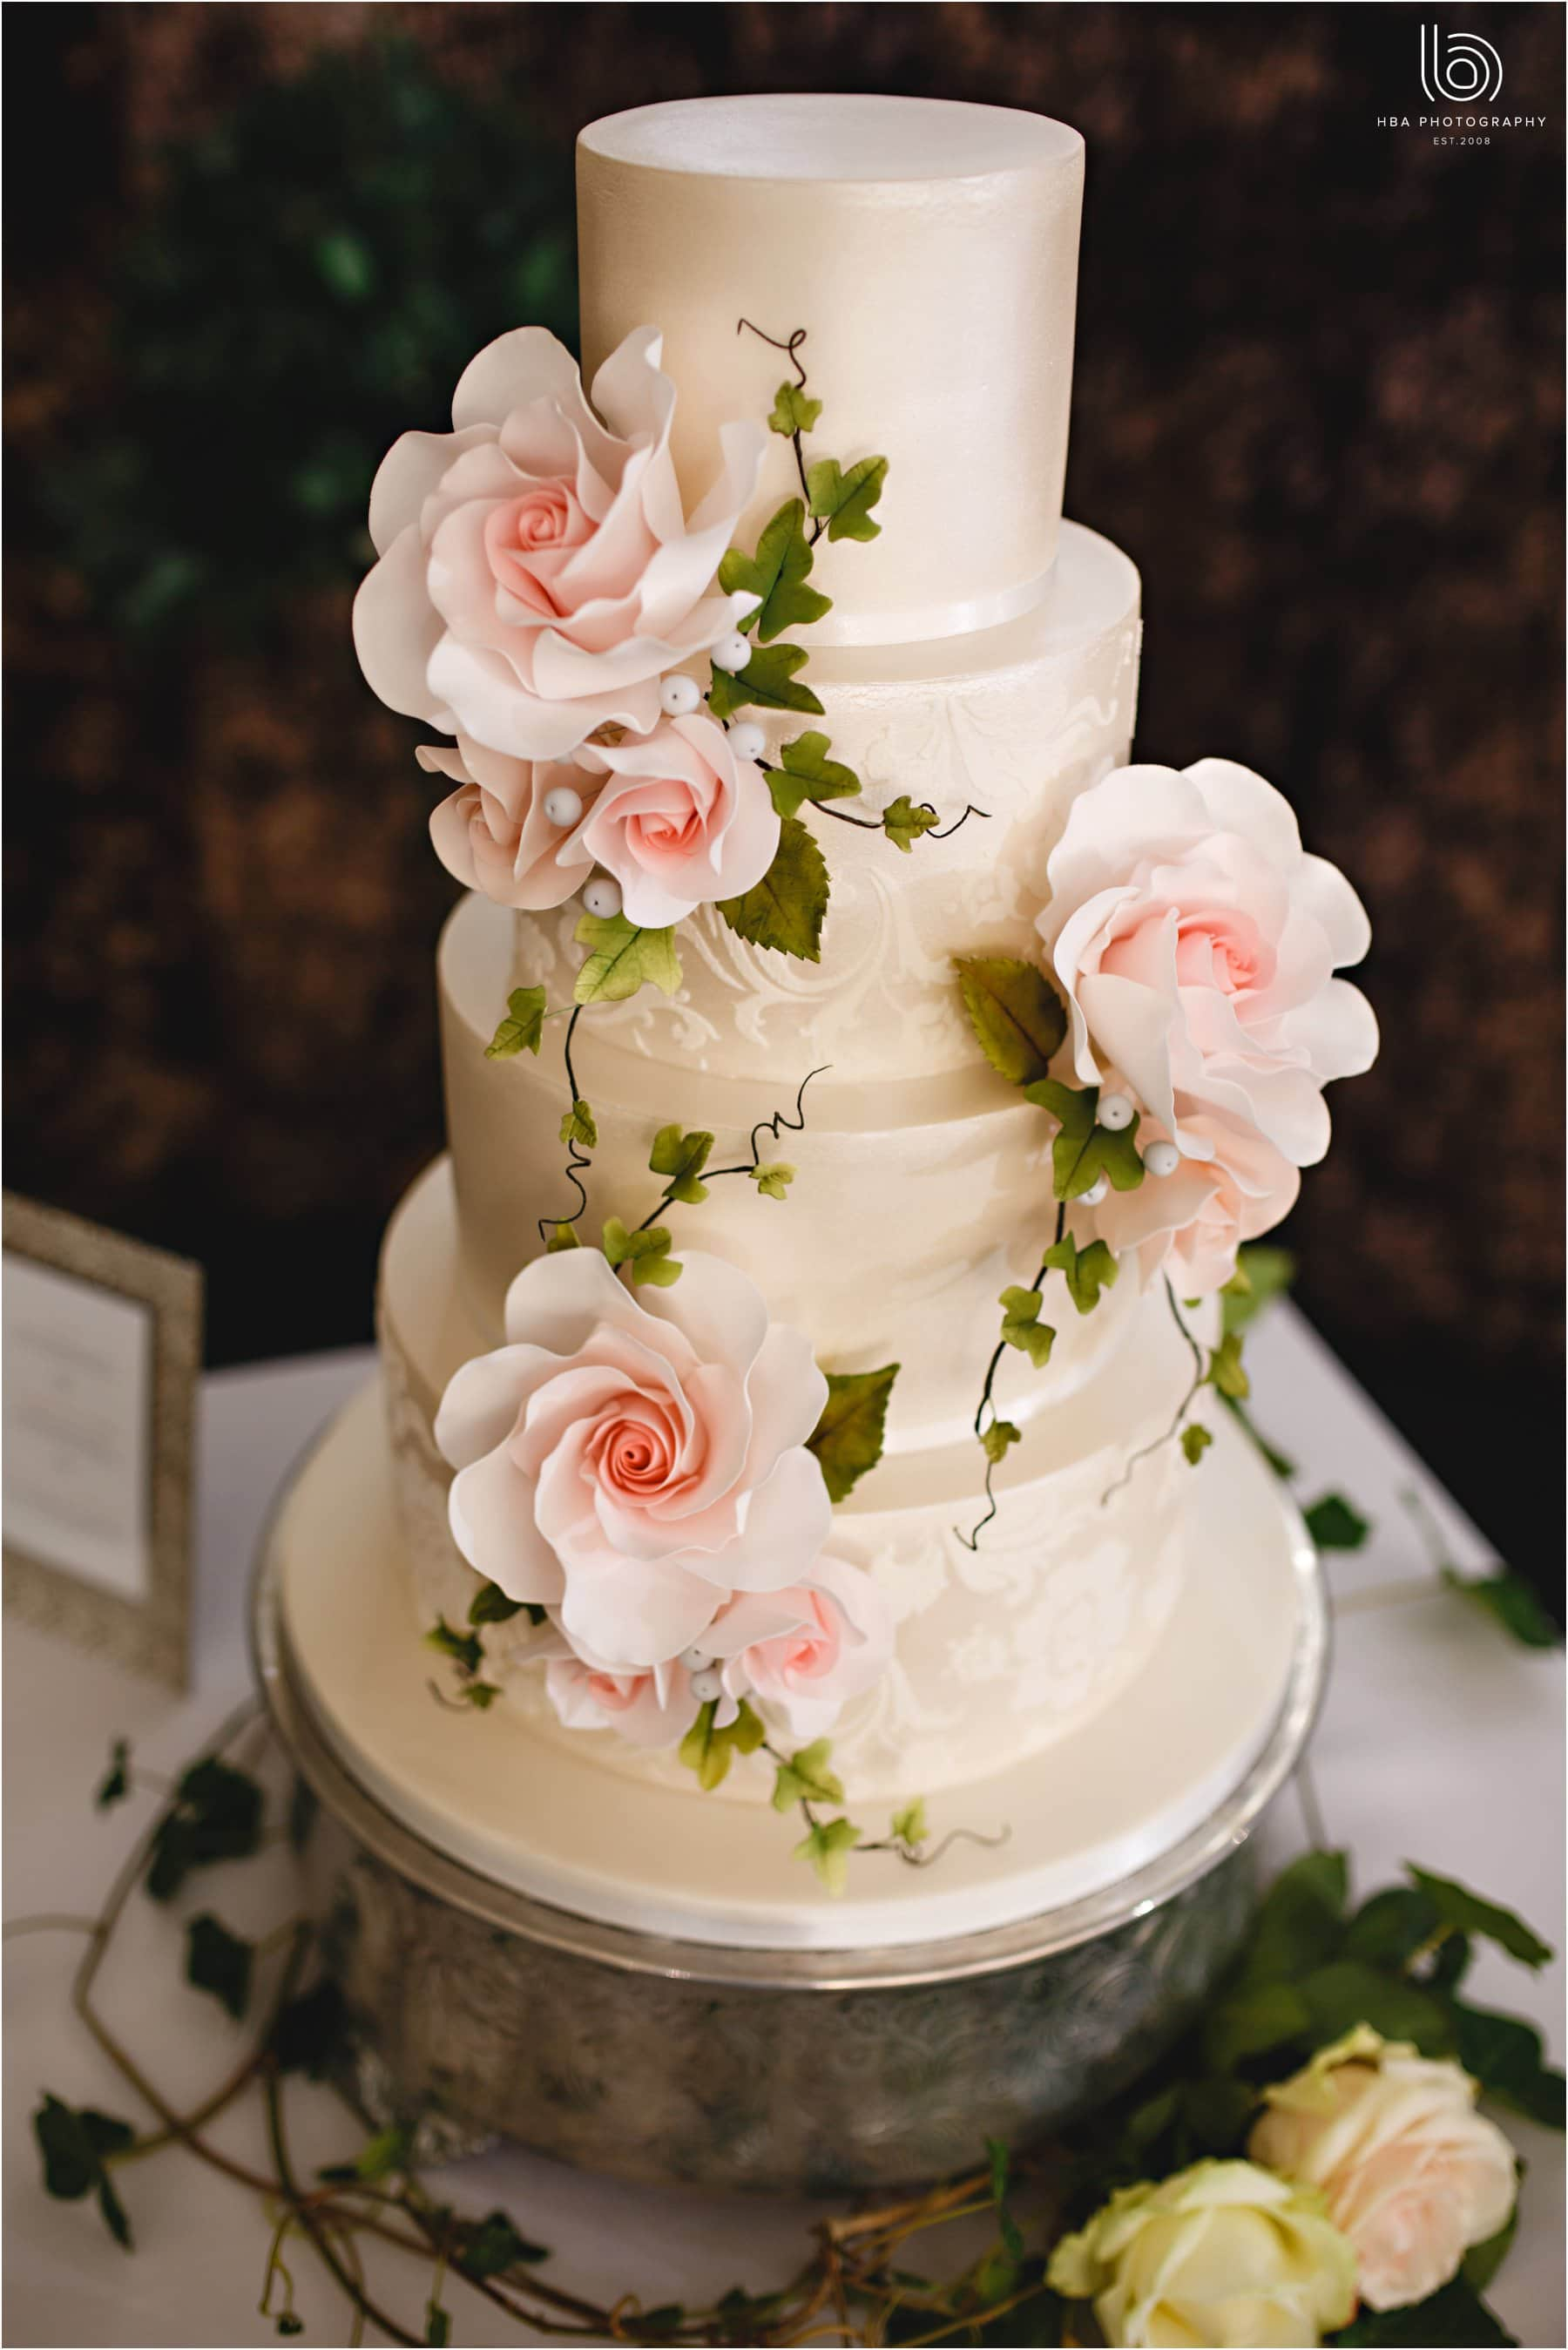 the wedding cake with pink flowers